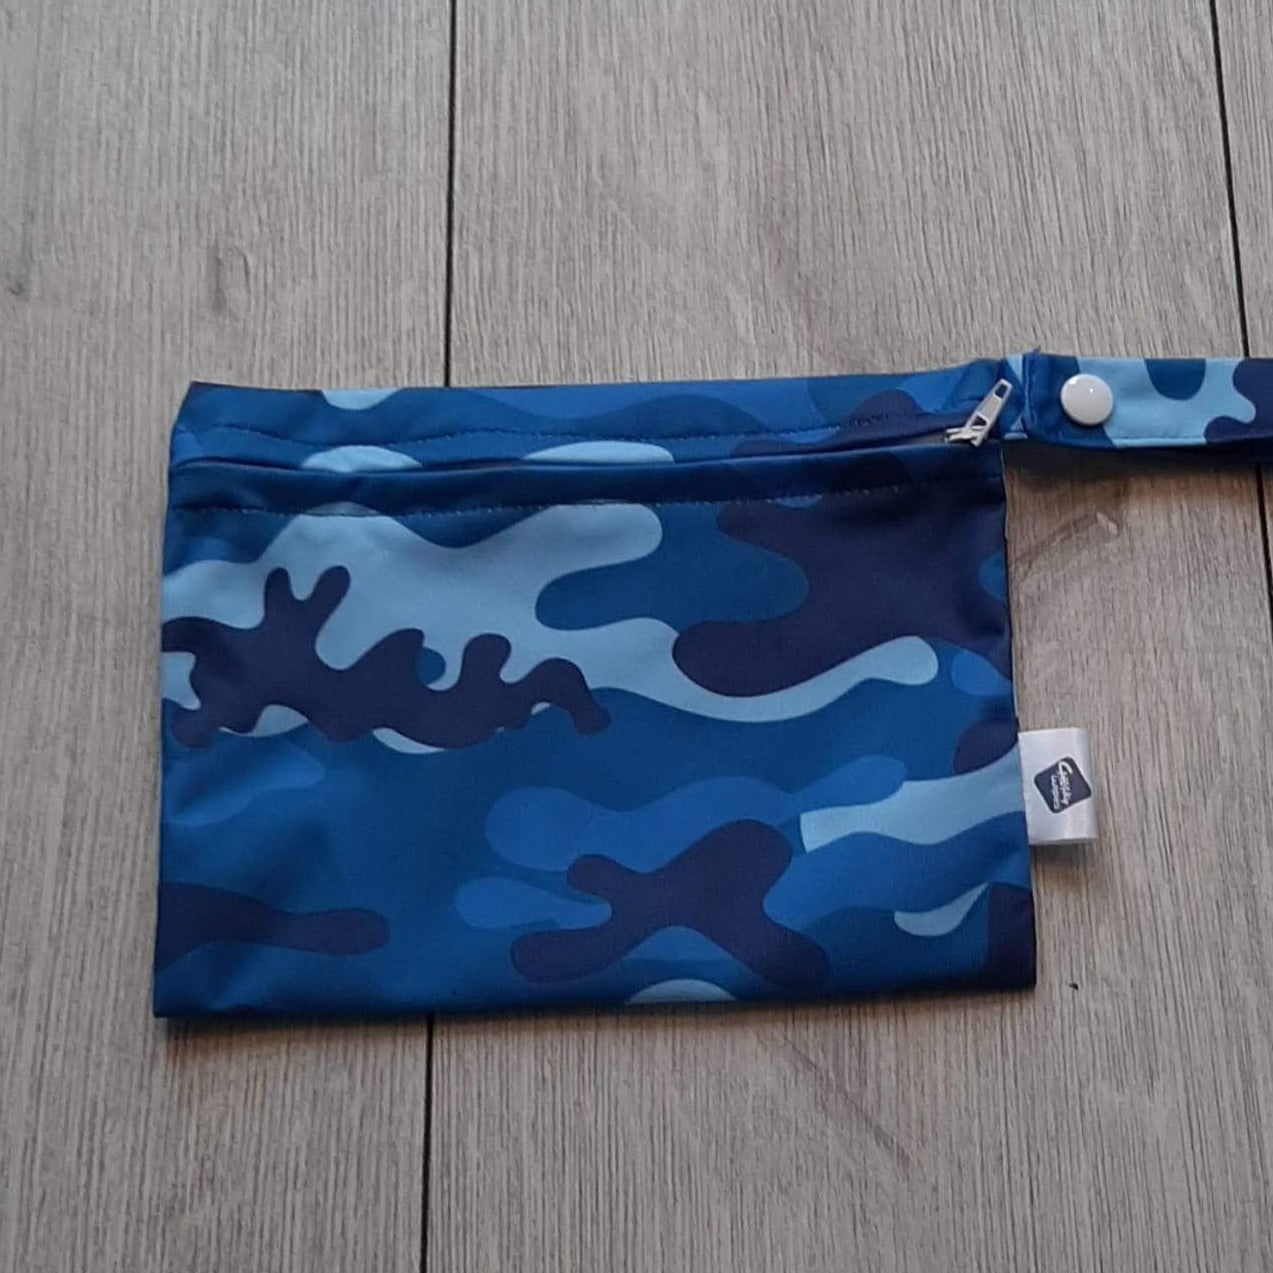 Wet Bag - Small